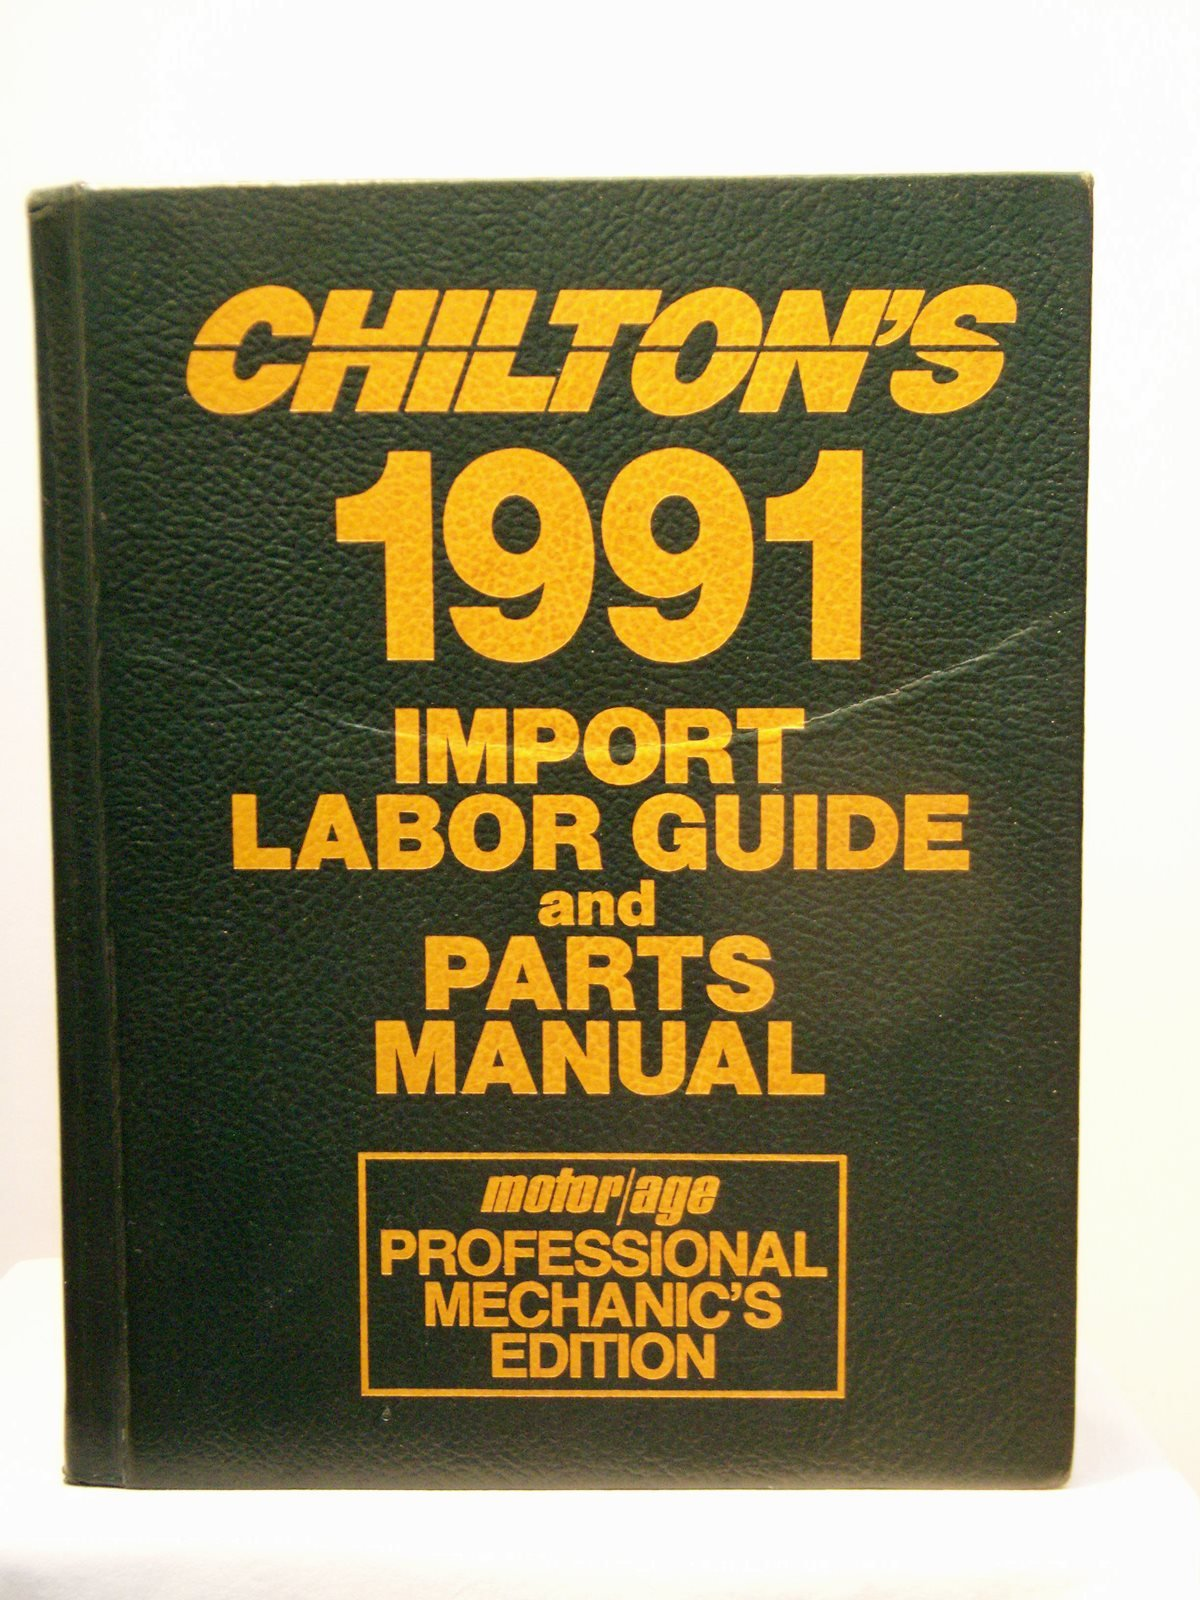 Chilton's 1991 Import Labor Guide and Parts Manual/Motor/Age Professional  Mechanic's Edition (CHILTON'S IMPORT LABOR GUIDE AND PARTS MANUAL): Chilton  Book ...